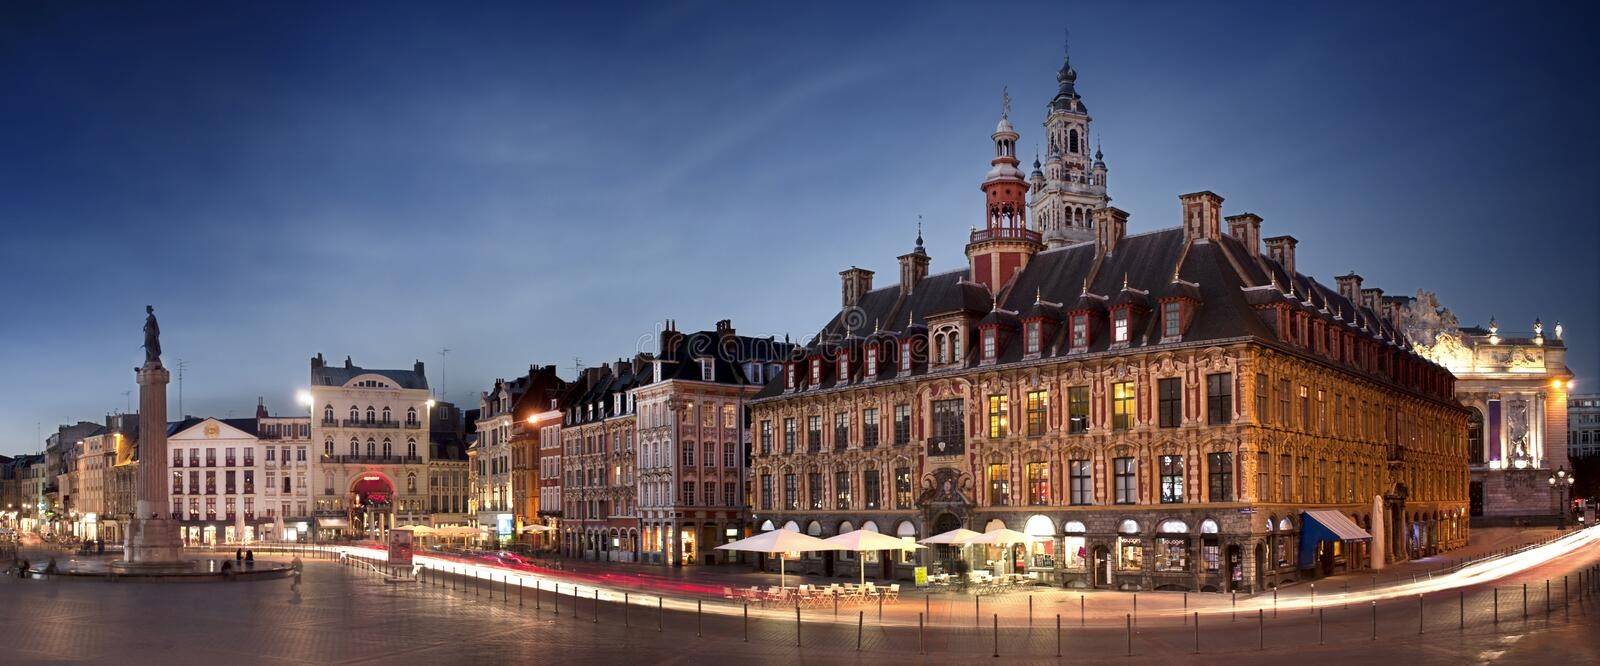 Main square of Lille, France royalty free stock images